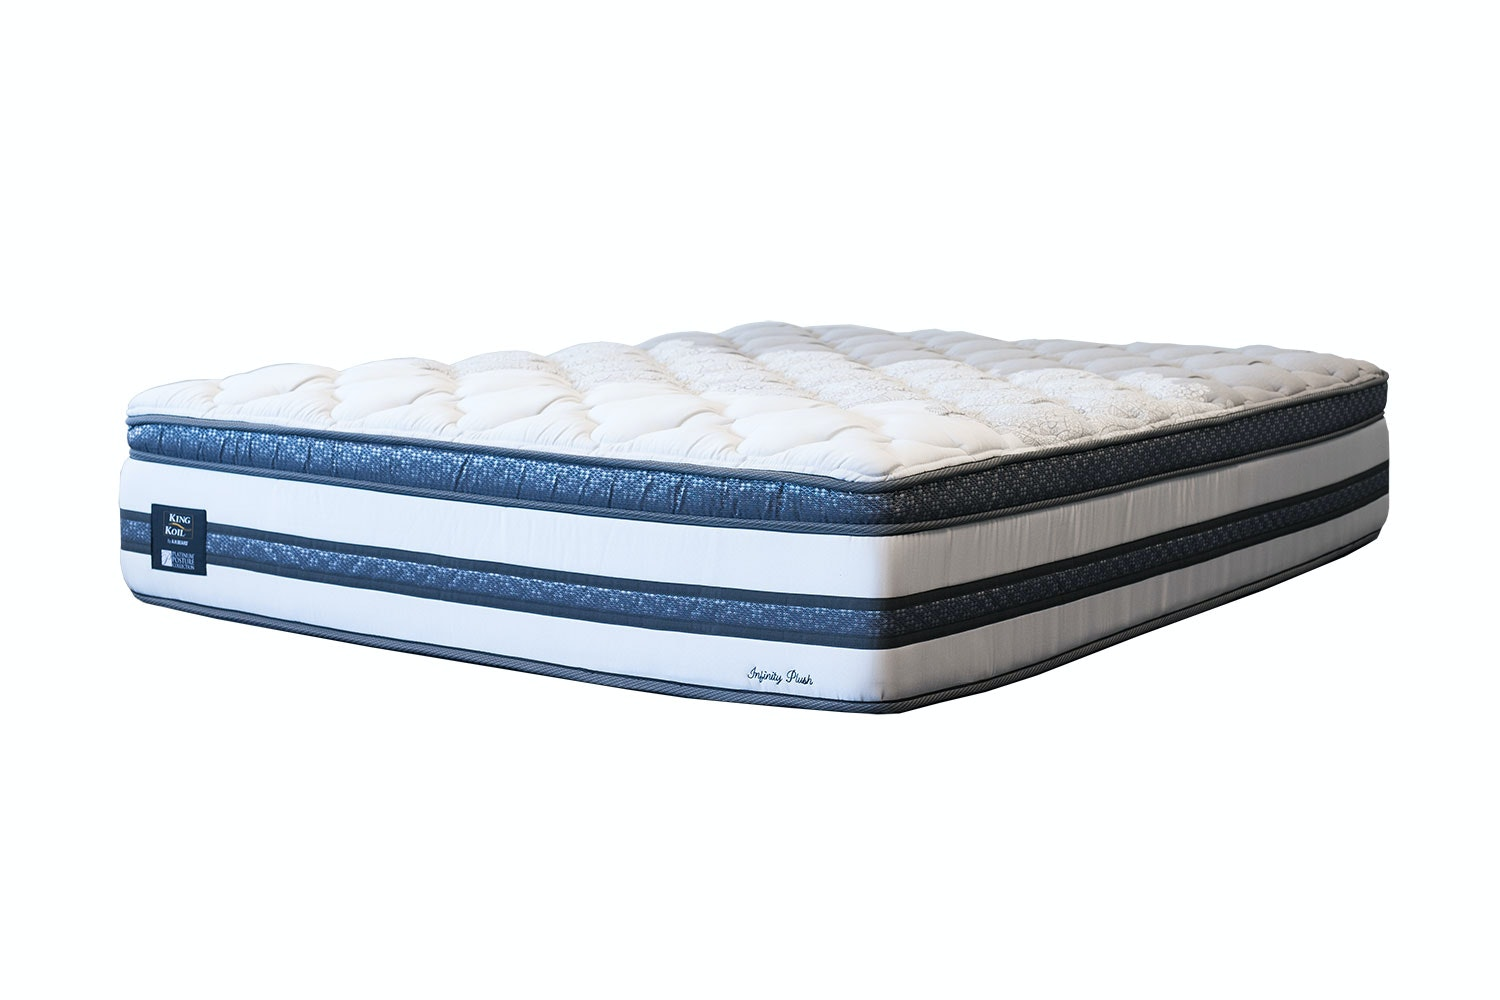 Infinity Plush King Mattress by King Koil